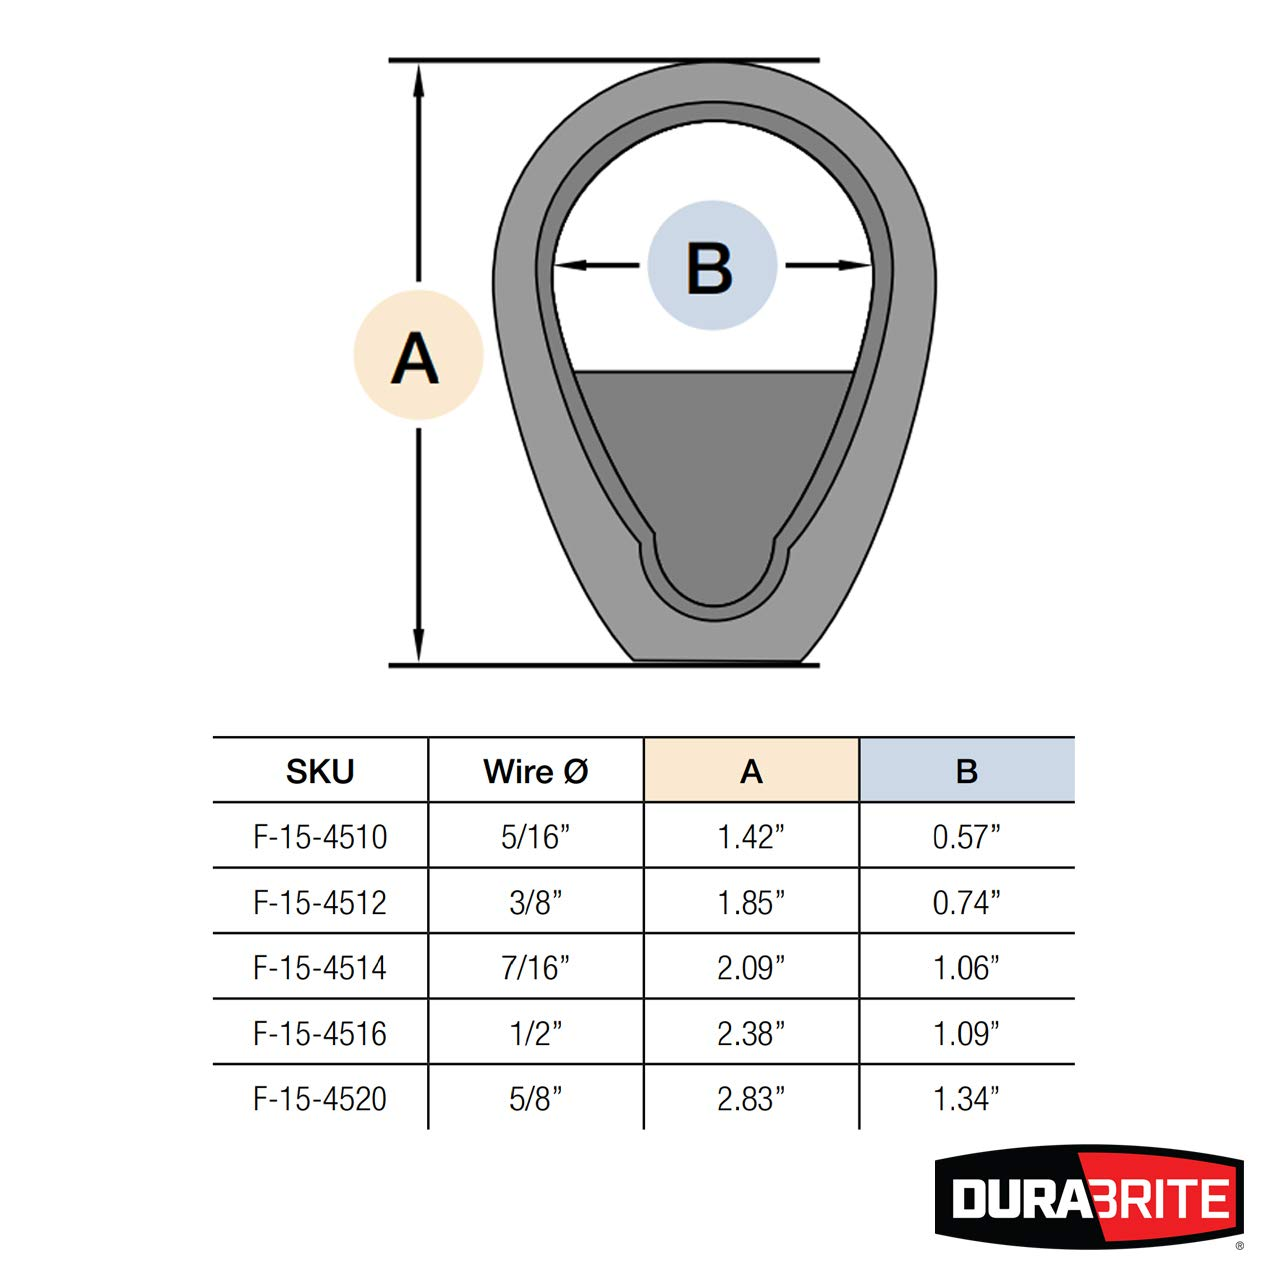 DuraBrite Gusset Wire Rope Thimbles (5-Pack) - 316 Stainless Steel Material, Reinforced Heavy-Duty Stub-End Type, Marine Grade - for Wire Rope Diameters 1/2''